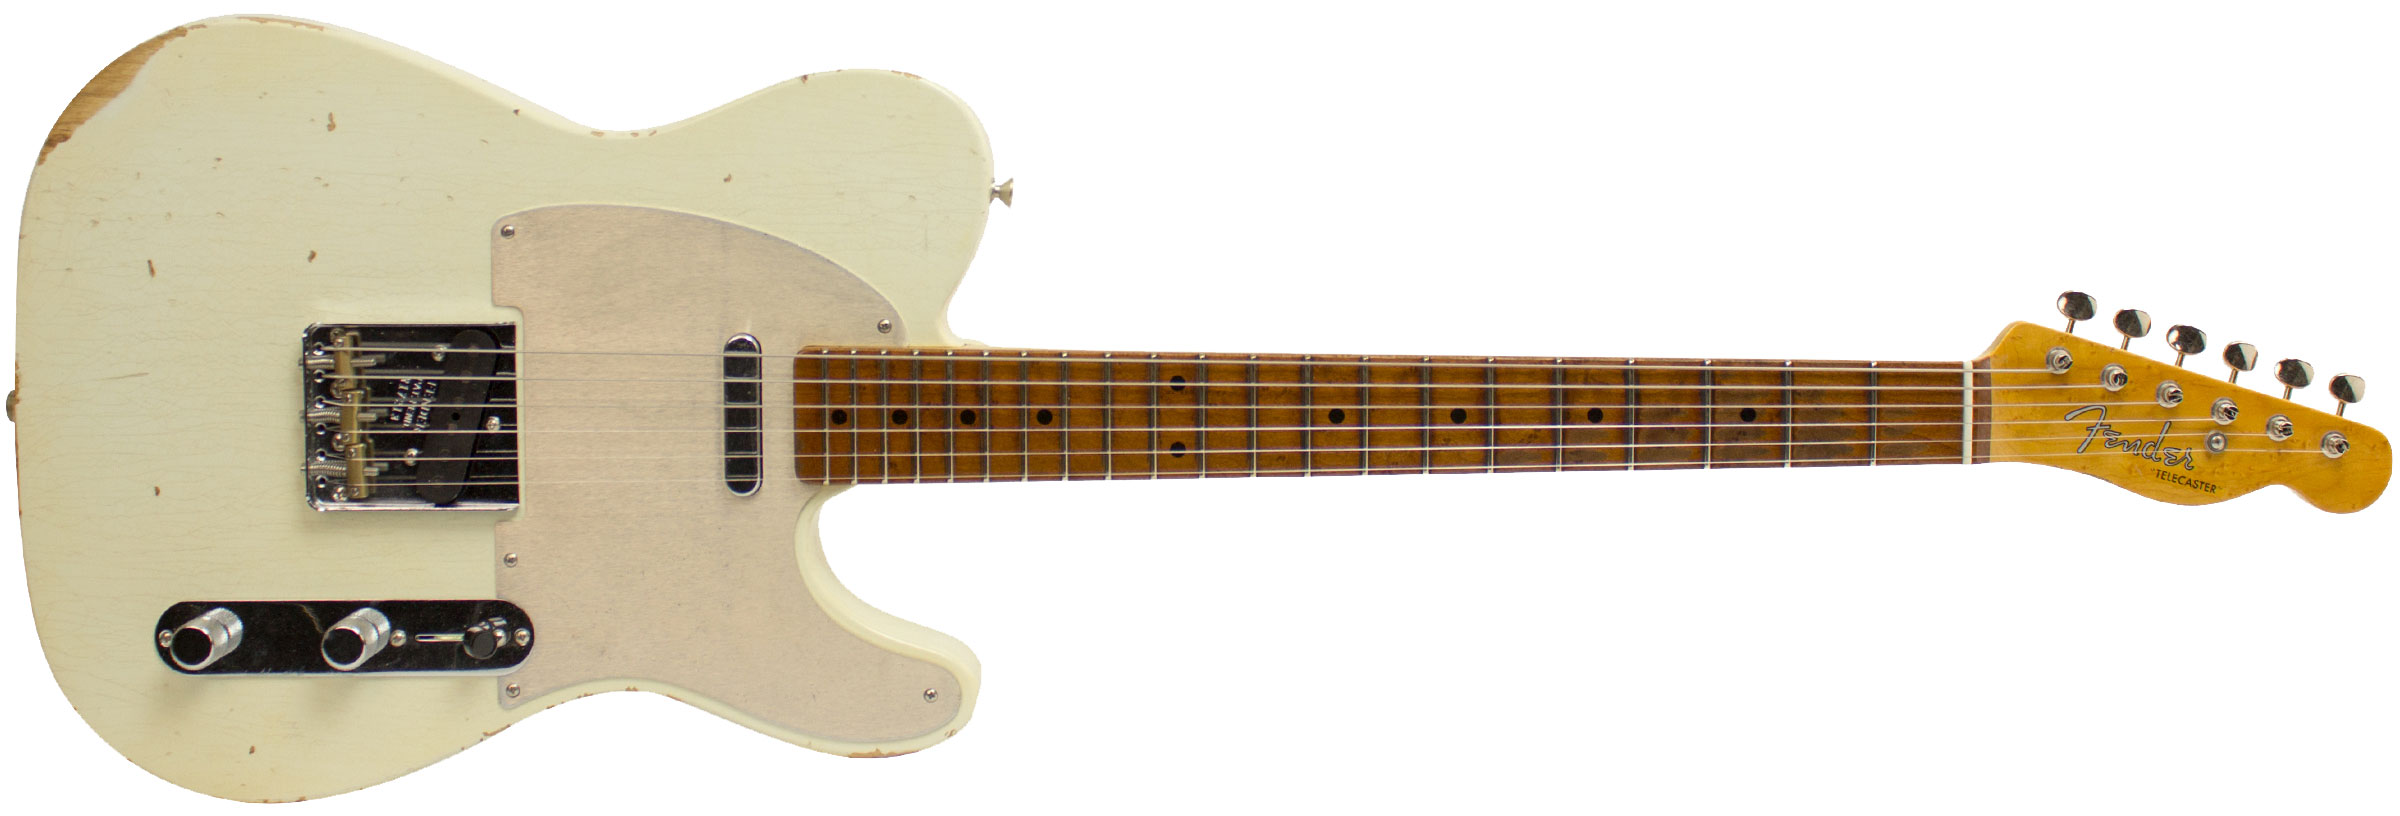 GUITARRA FENDER TELECASTER ROASTED FRETBOARD RELIC C. BUILT 923-9822-805 AGED OLYMPIC WHITE